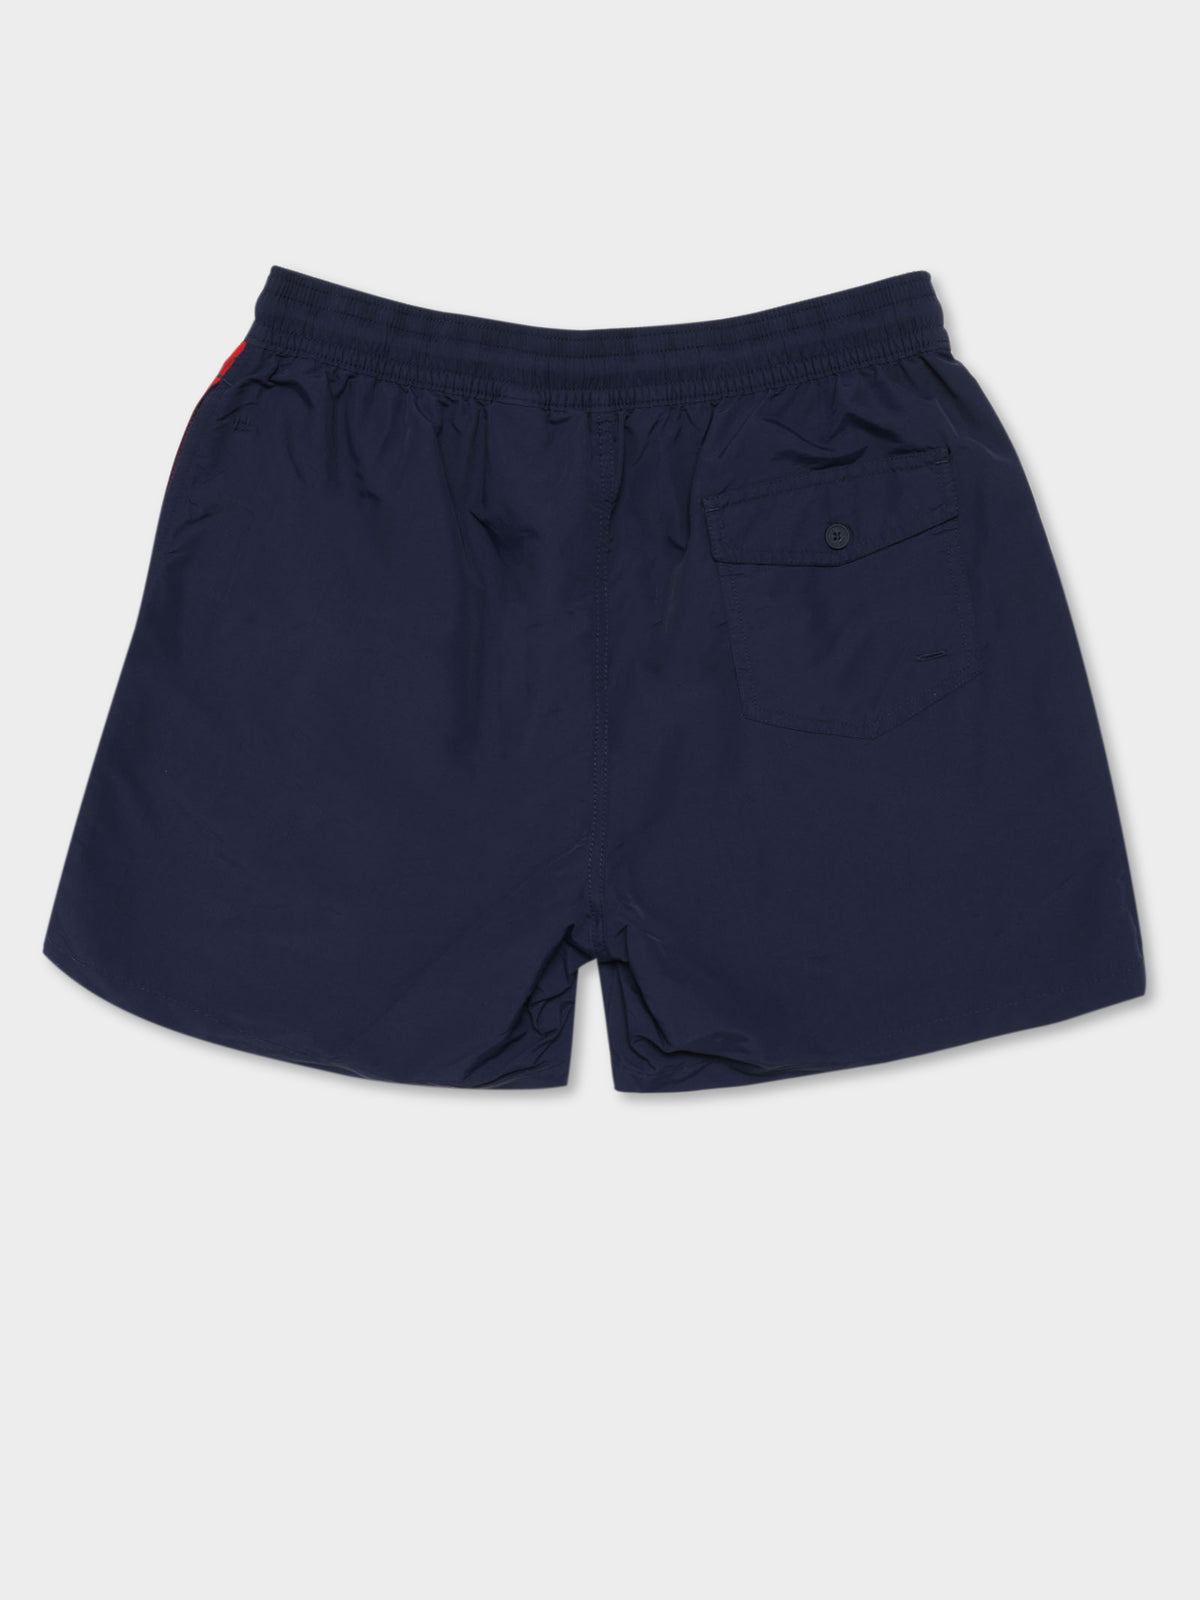 Traveller Swim Shorts in Navy, Red & White